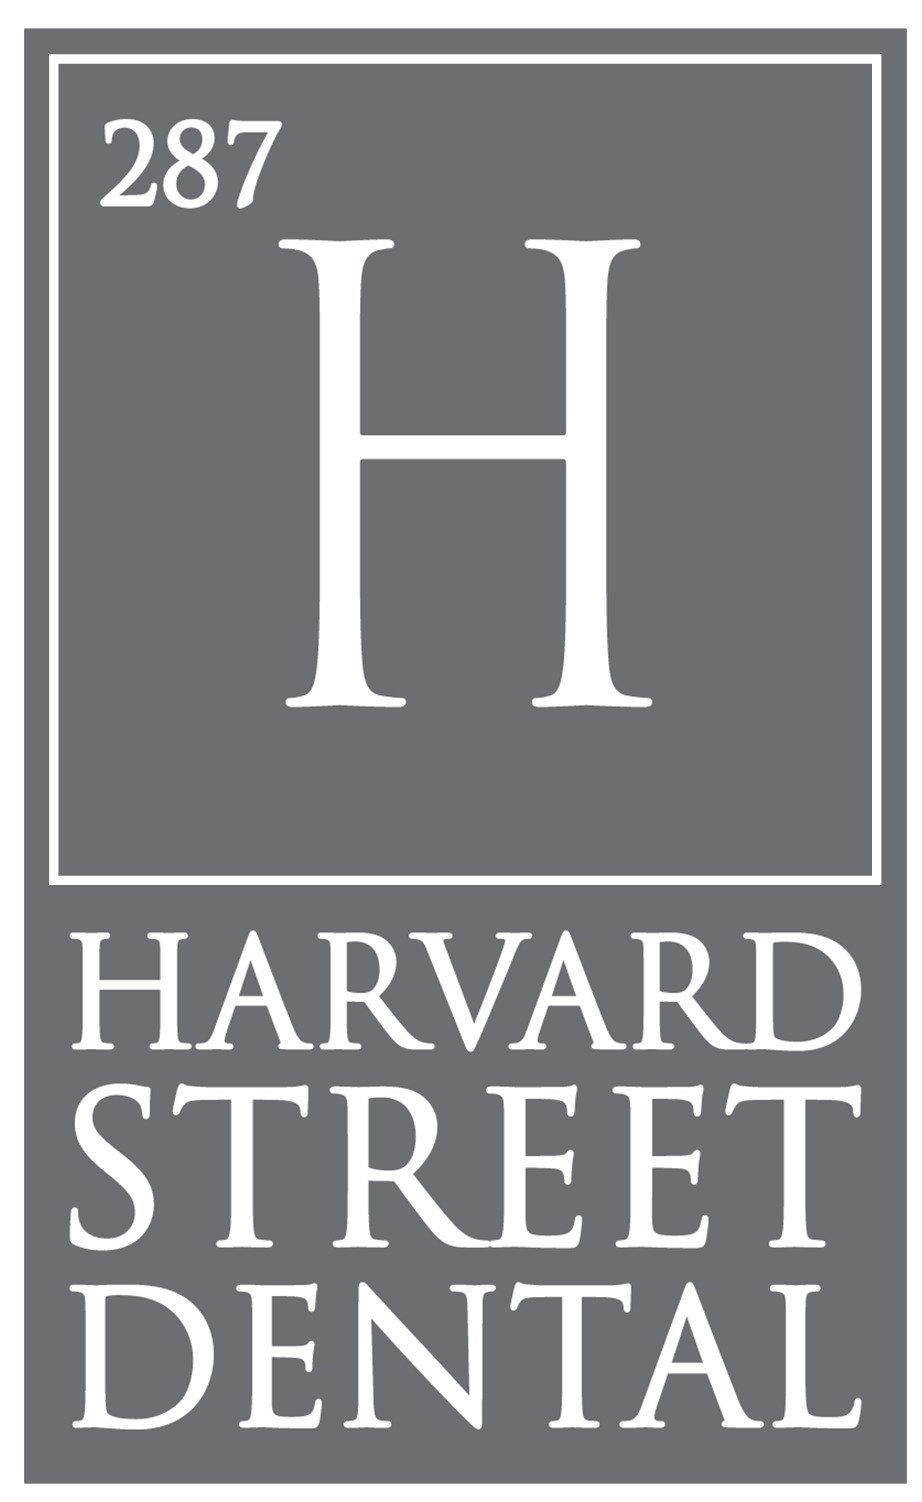 Harvard Street Dental.jpg